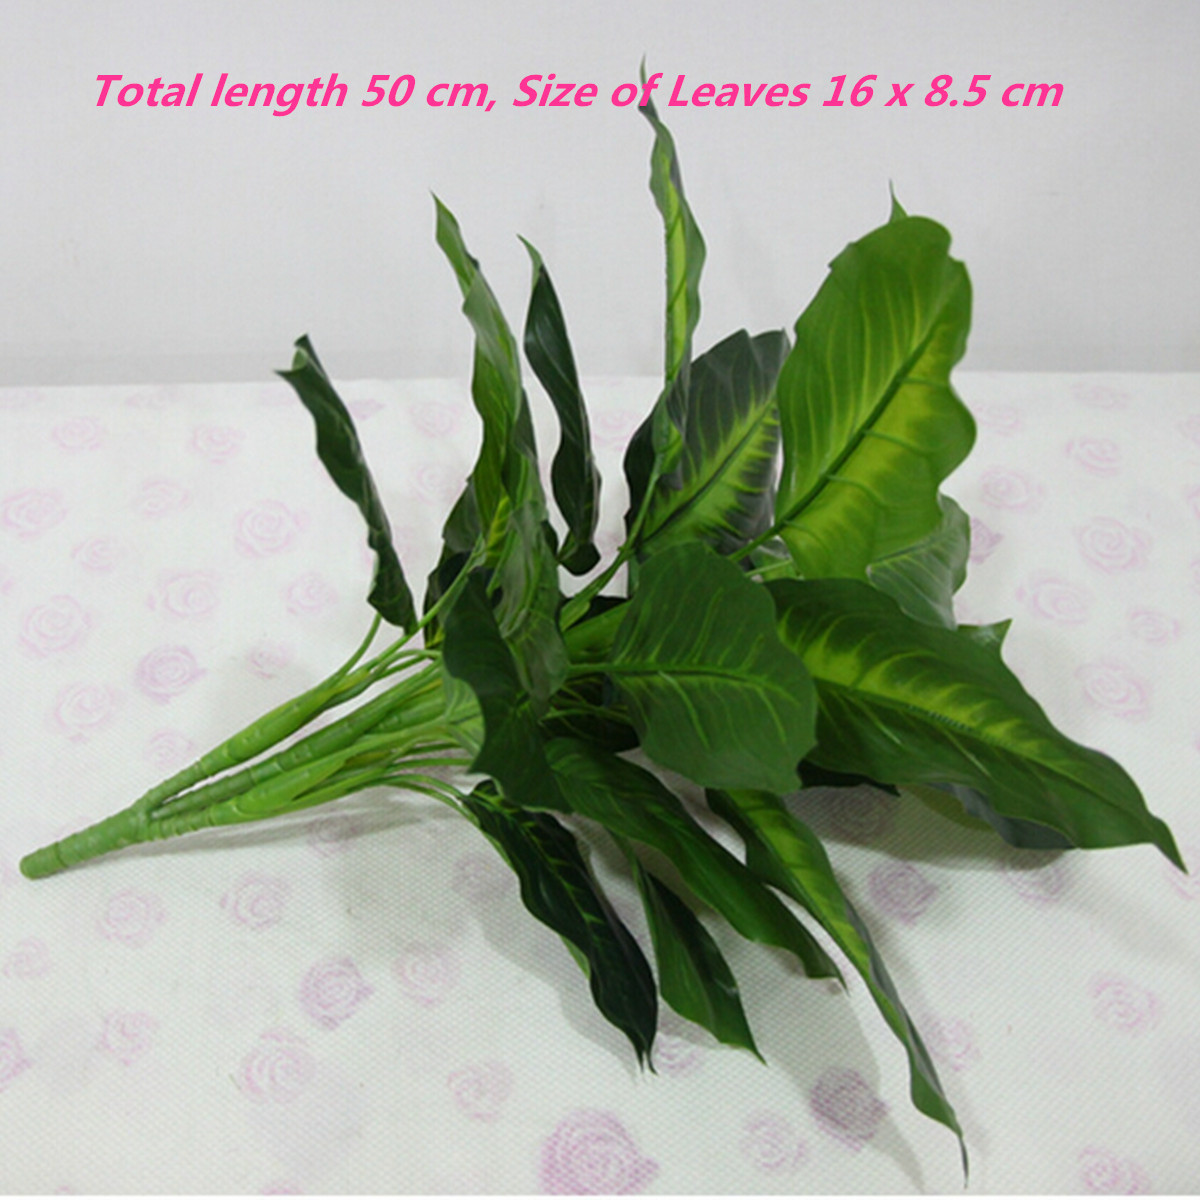 50cm Lifelike Leaves Evergreen Artificial Plant Simulation Flowers Bush Potted Flower Home Decor